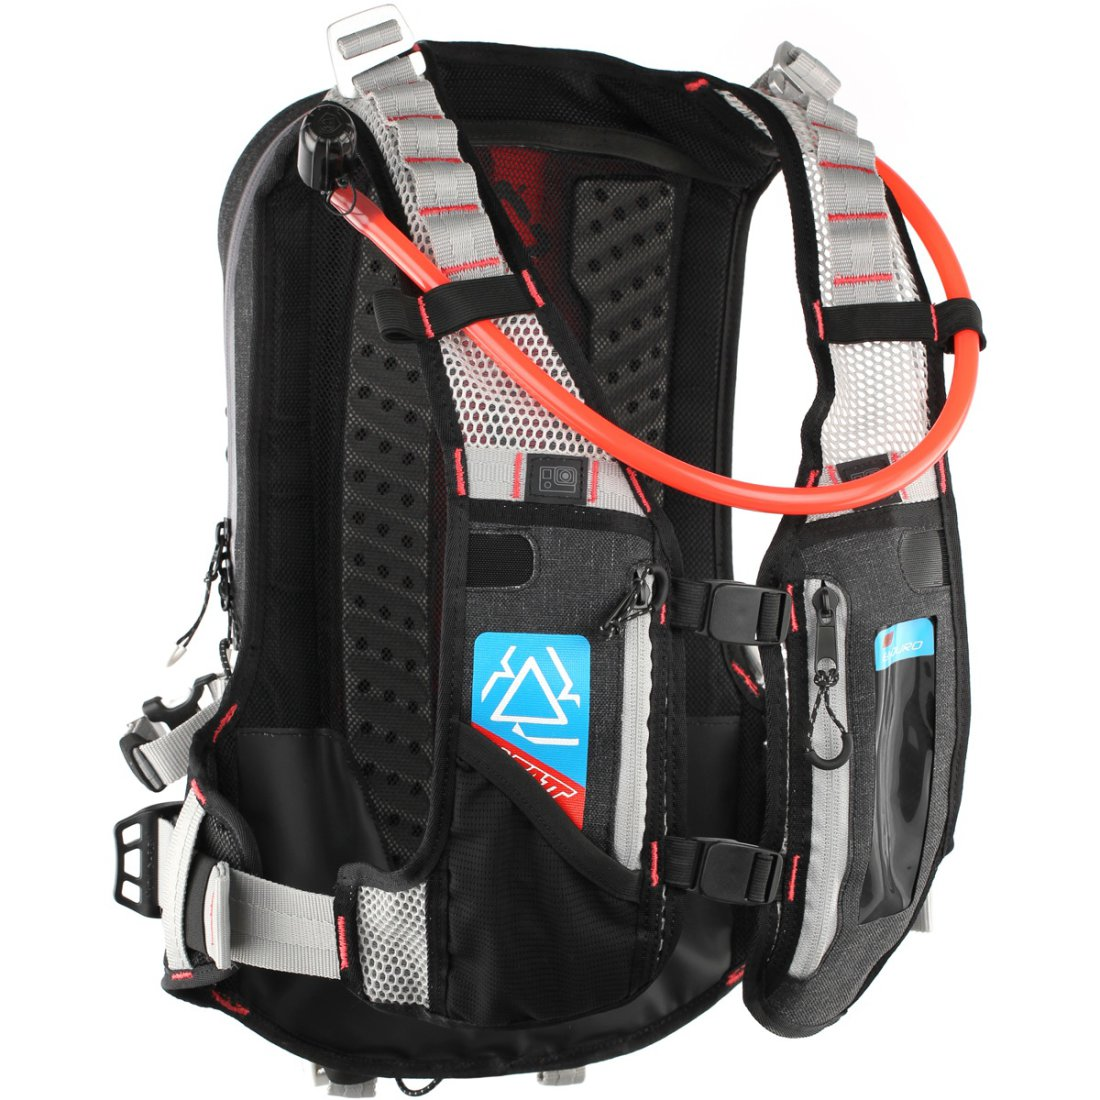 Sac LEATT Hydration Pack DBX Enduro Lite WP 2.0 UNICA 8G99cPS